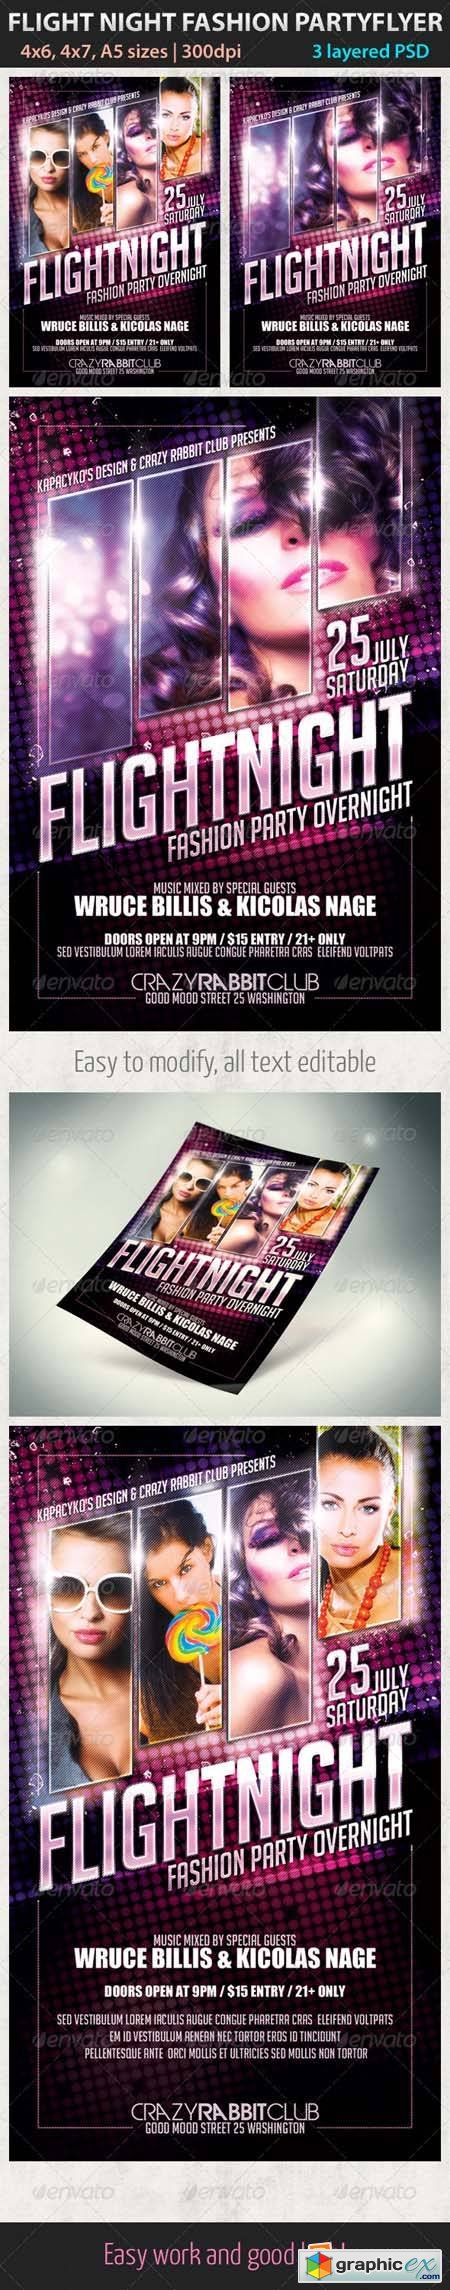 Flight Night Fashion Party Flyer Template